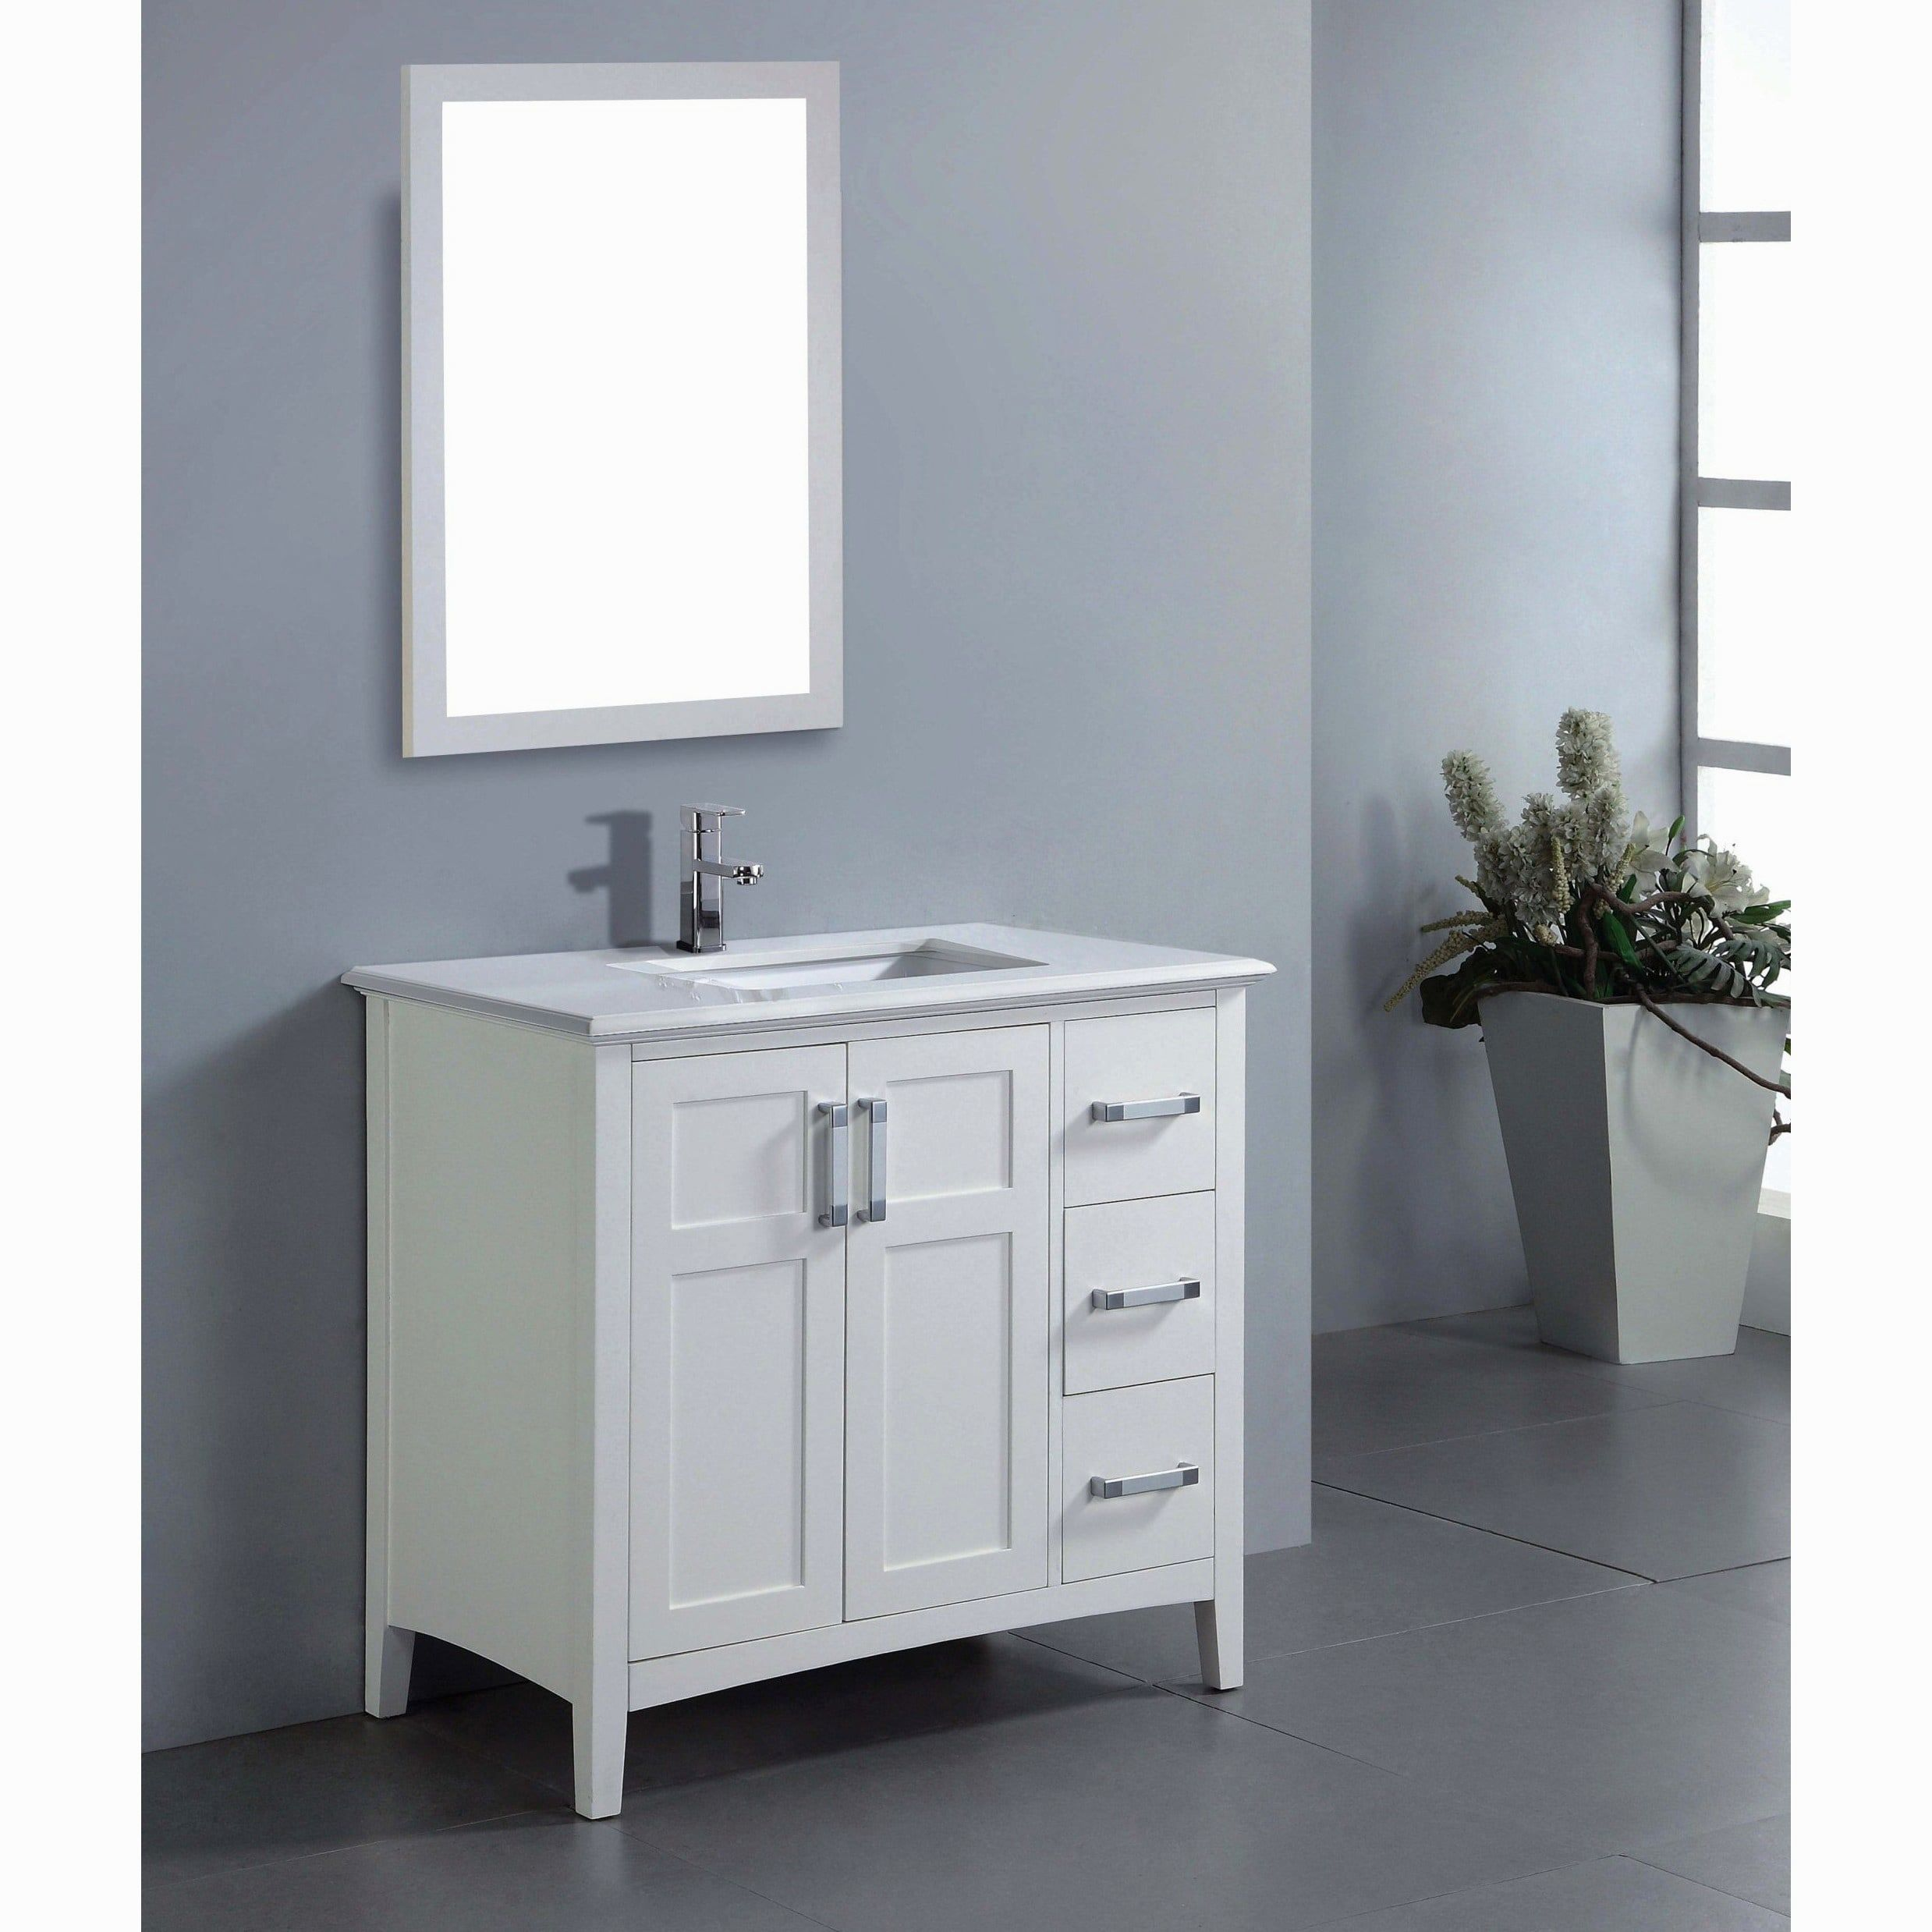 best of bathroom vanity 30 inch online-Fantastic Bathroom Vanity 30 Inch Model